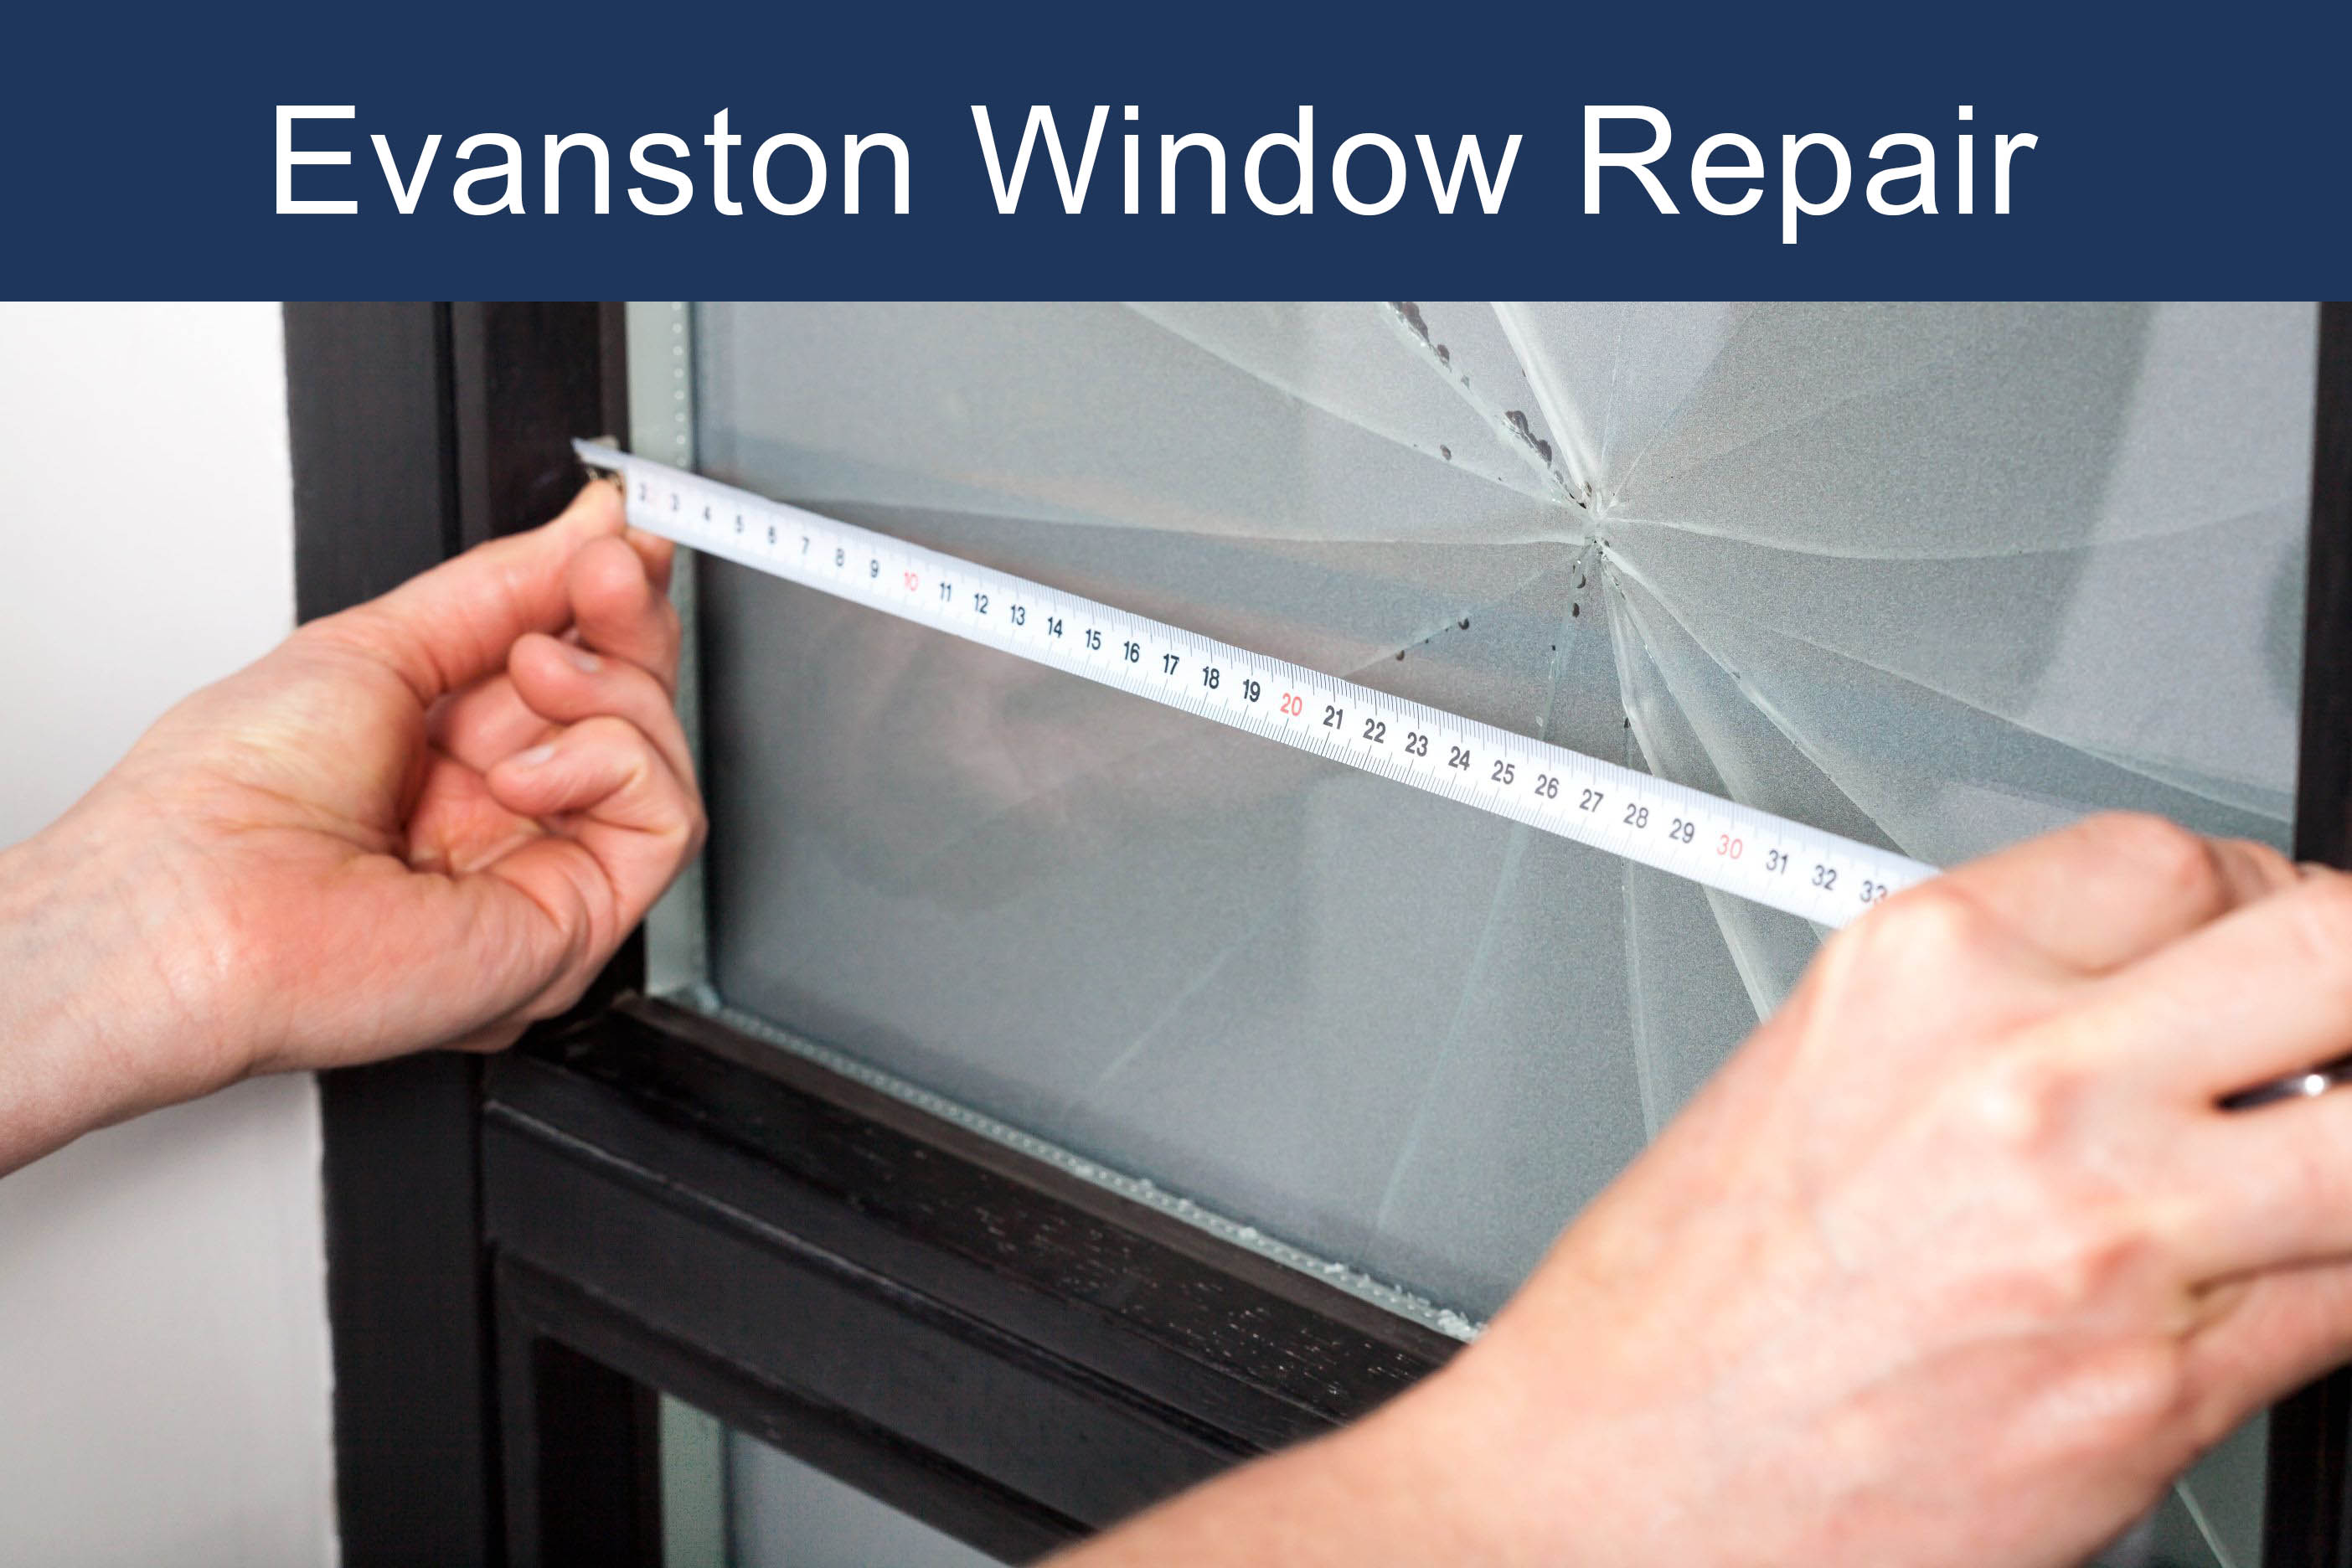 evanston window repair